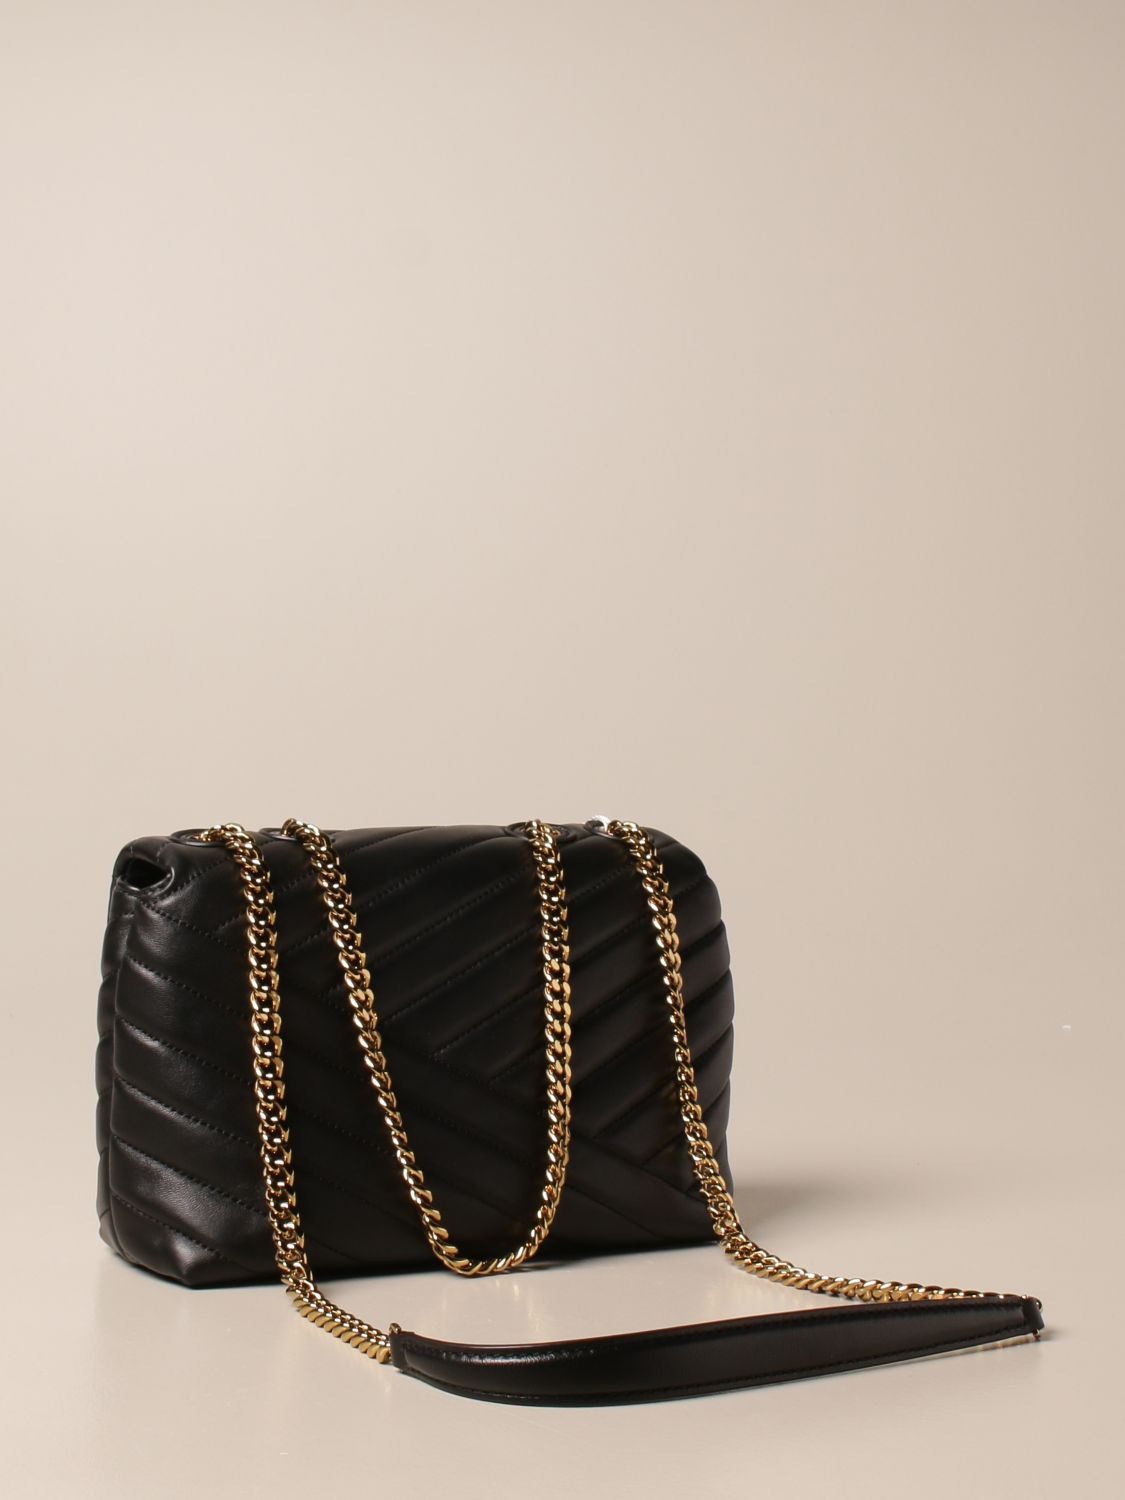 Crossbody bags Tory Burch: Kira Tory Burch bag in quilted leather black 3